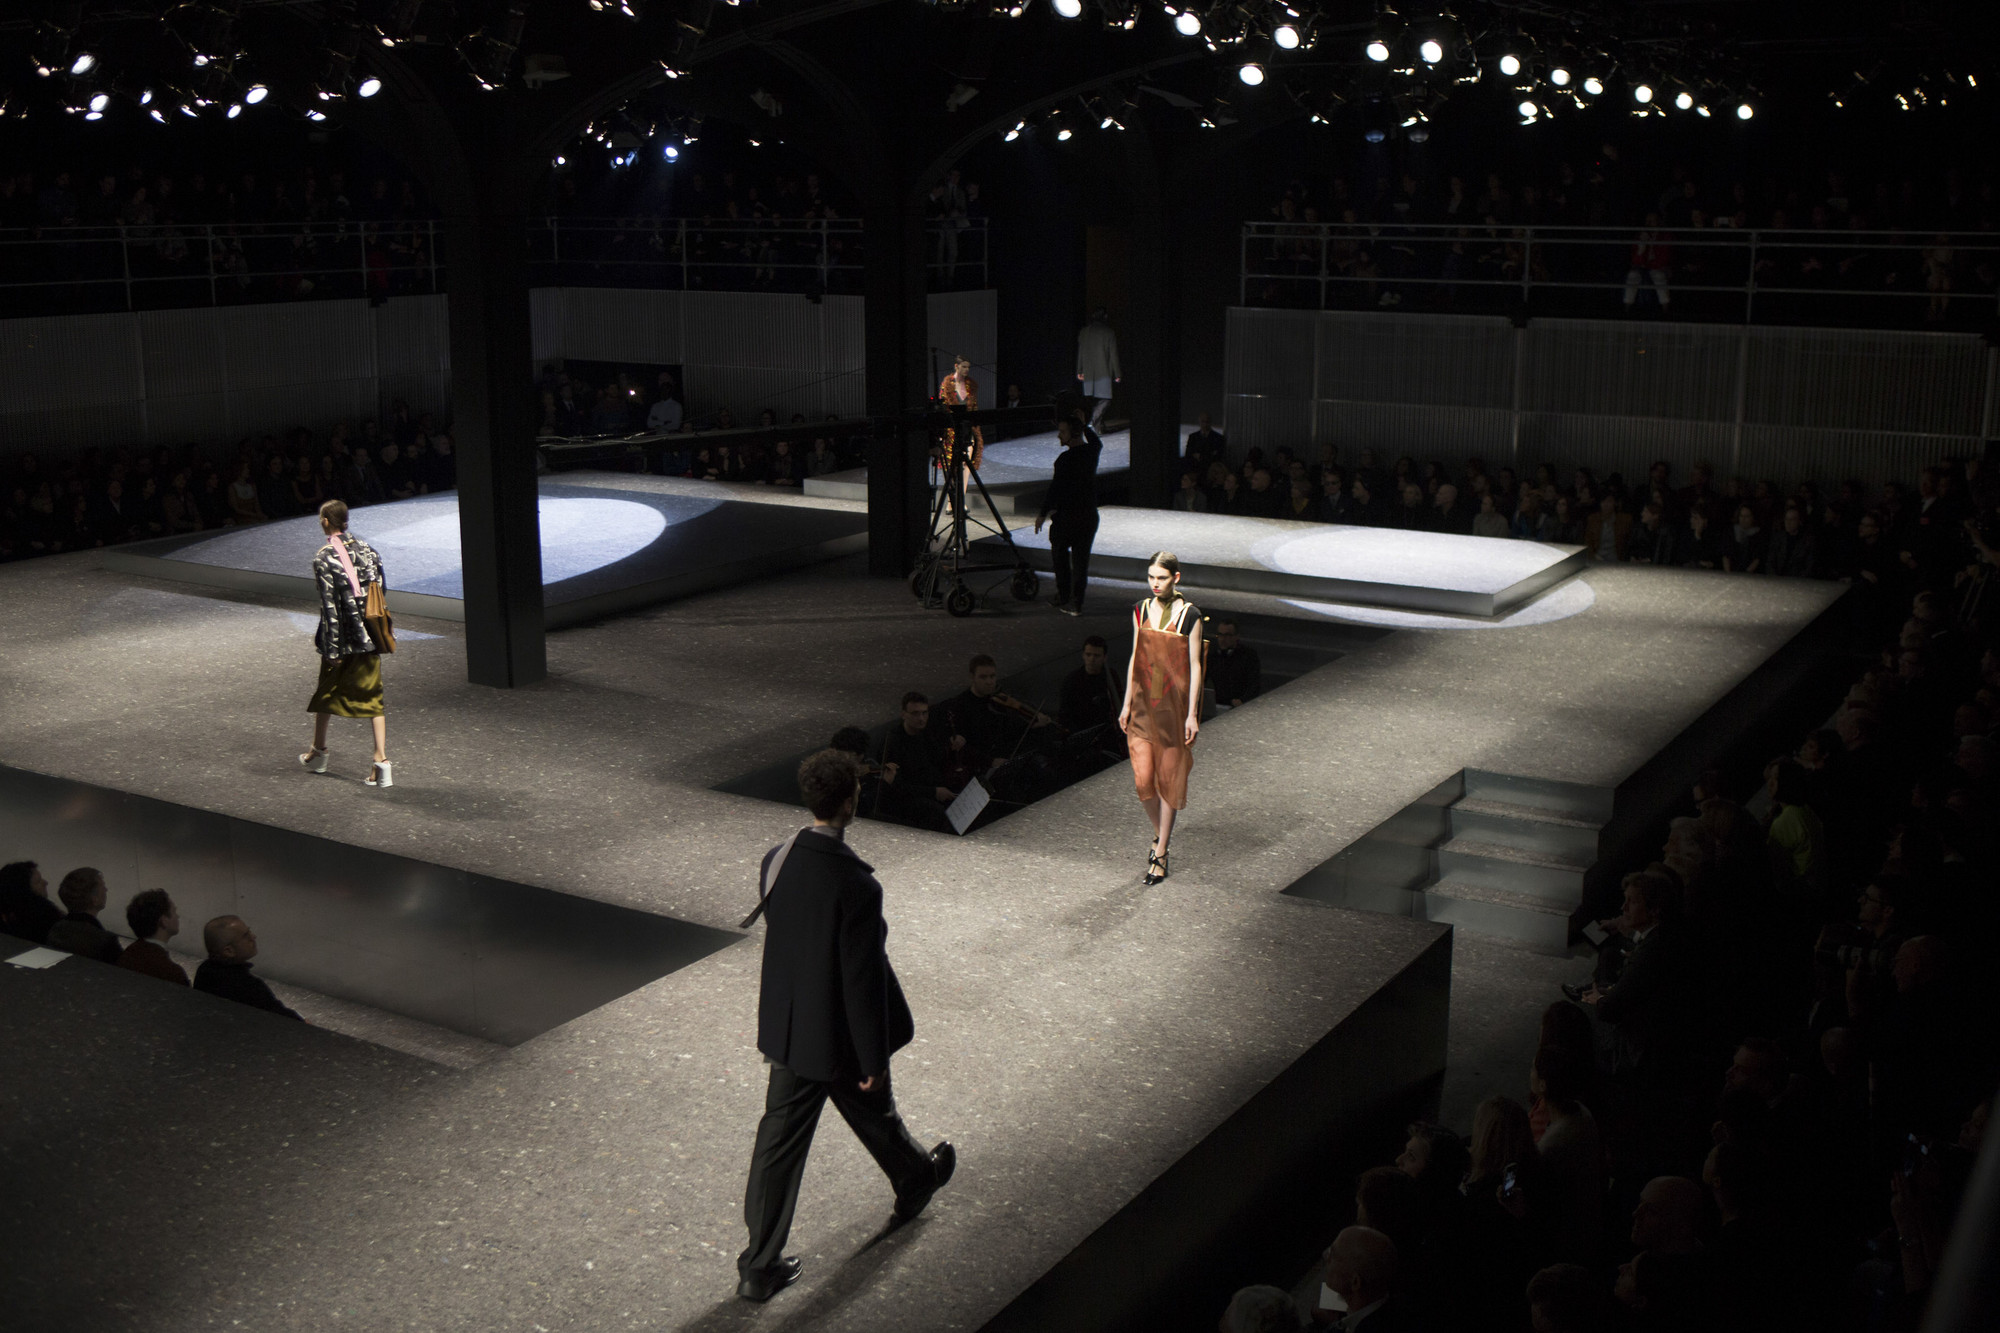 Oma 39 s latest prada catwalk a stage punctuated with - Fashion show stage design architecture plans ...